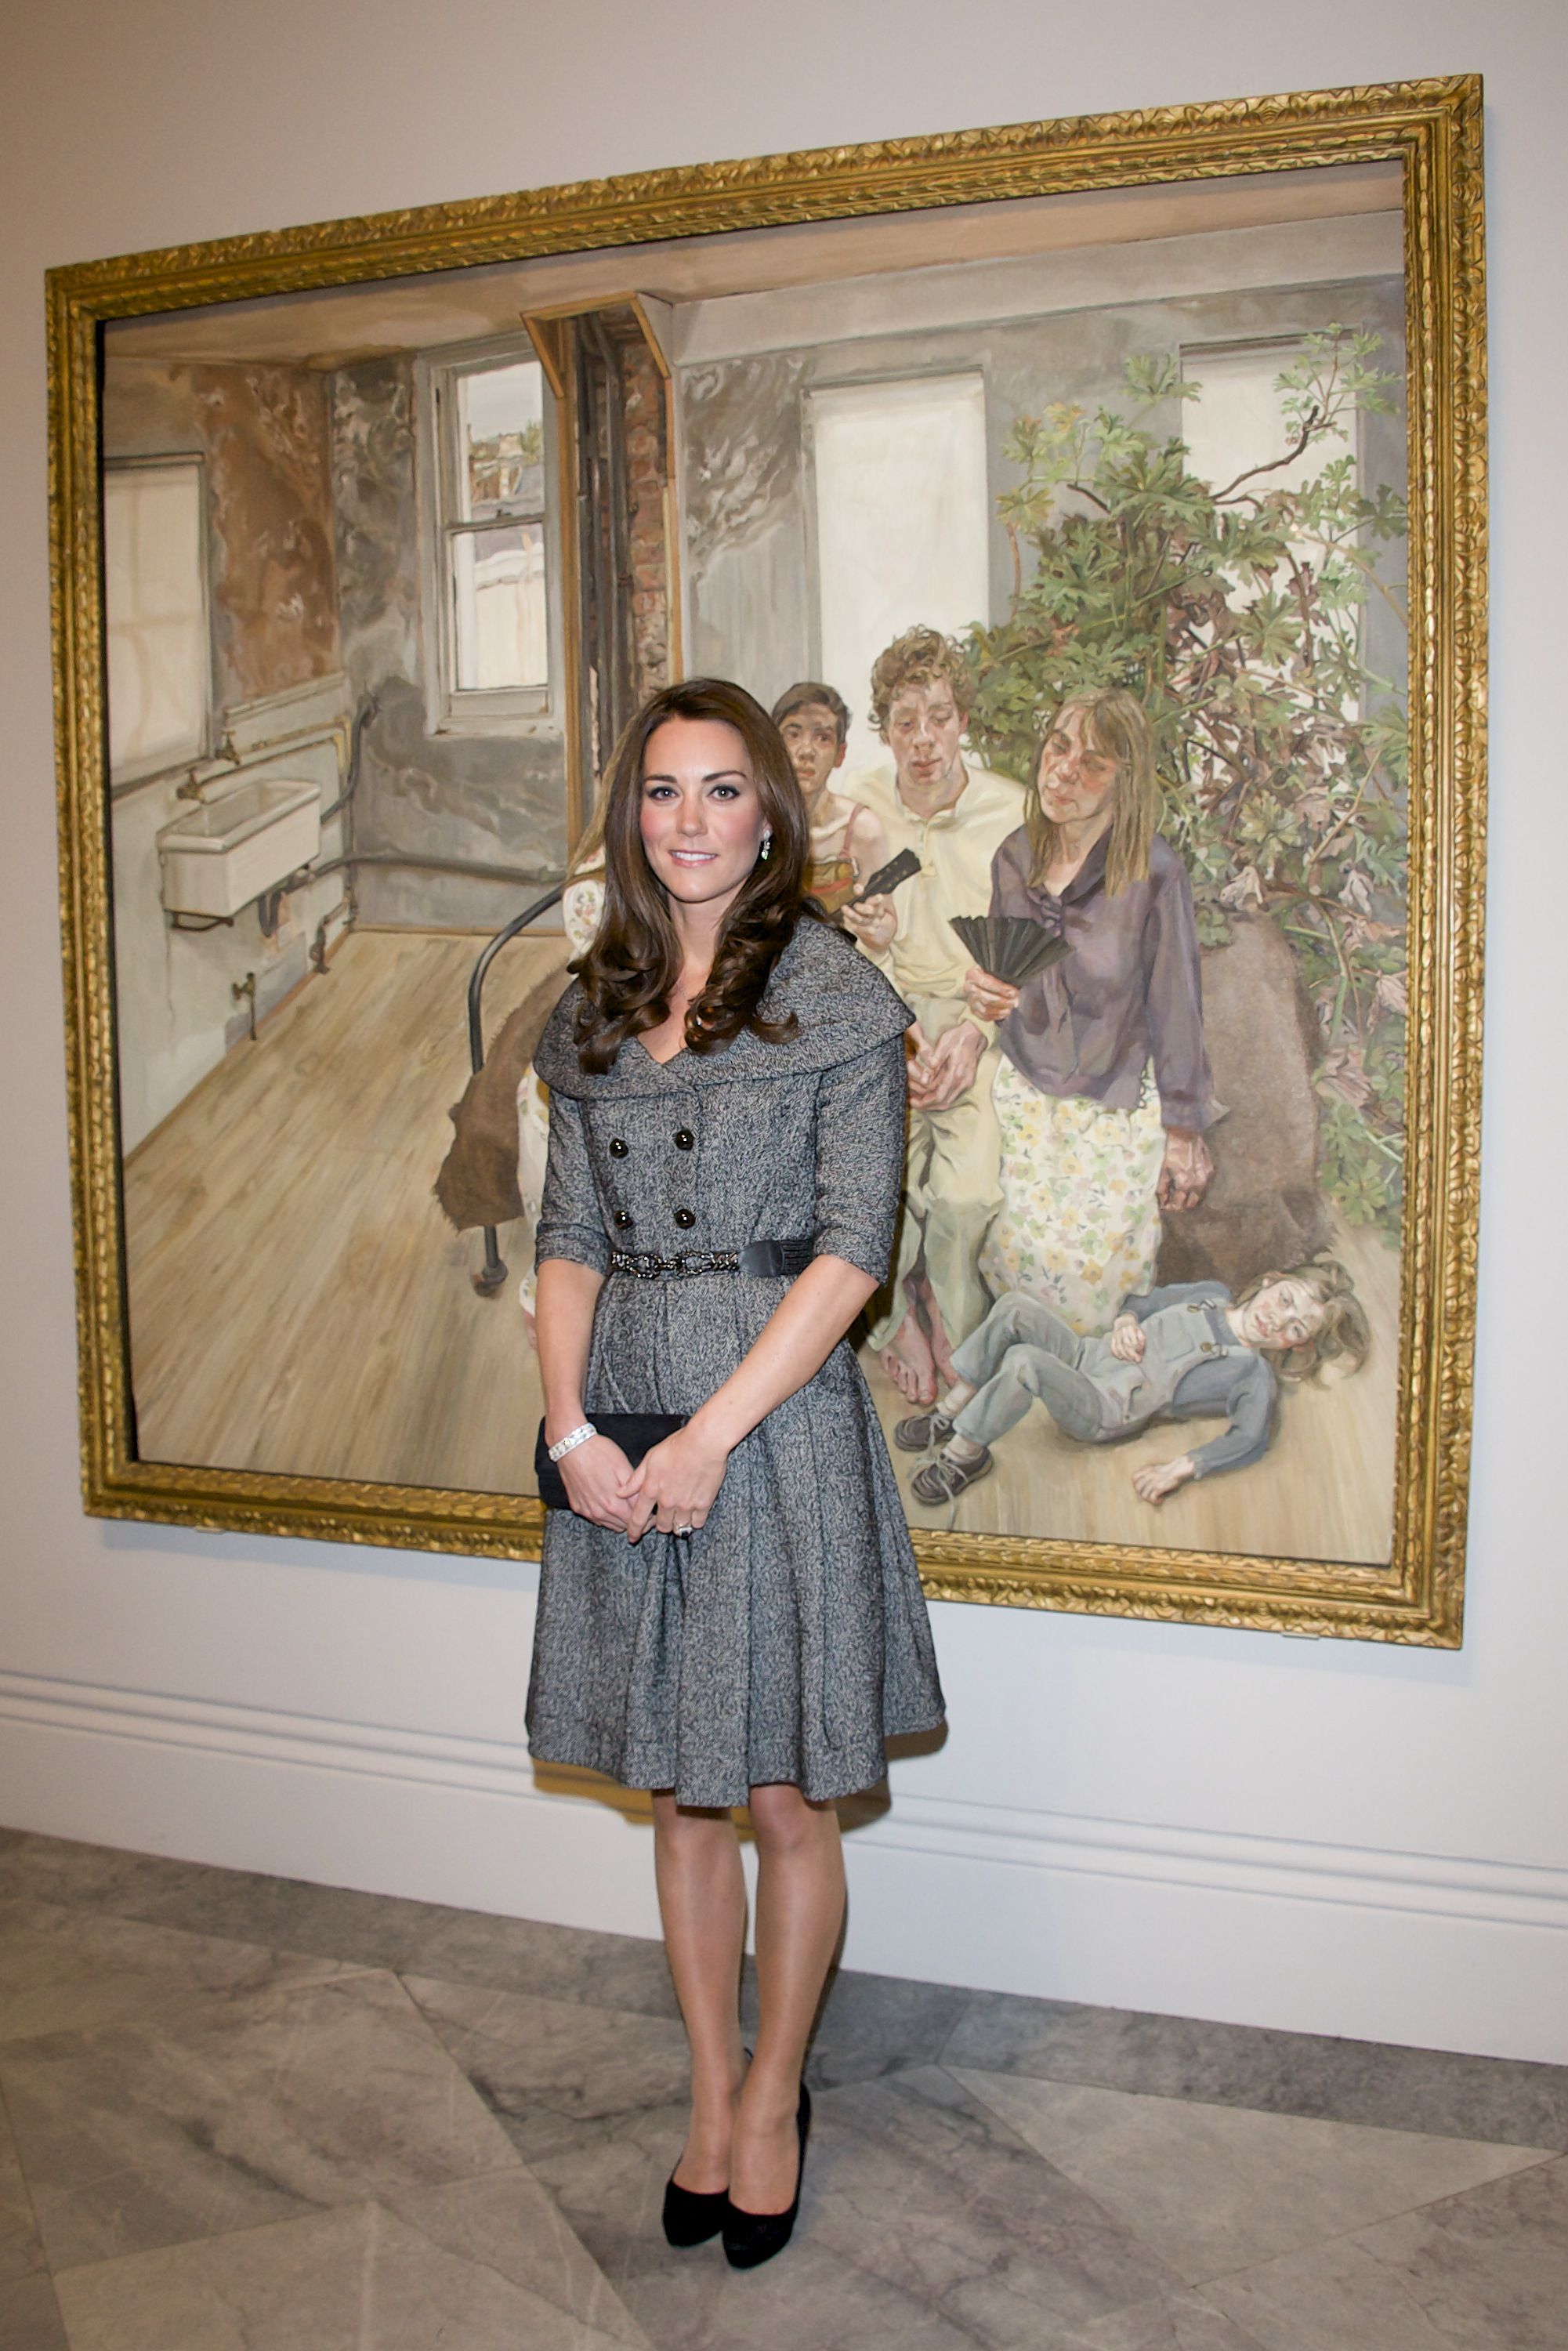 <strong>Flying Solo</strong>On Feb. 8, 2012, the Duchess wore a belted gray dress and black pumps to attend a Lucian Freud exhibition at the National Portrait Gallery in London. With Prince William away on military duty, the appearance marked Middleton's first solo official engagement as a royal.